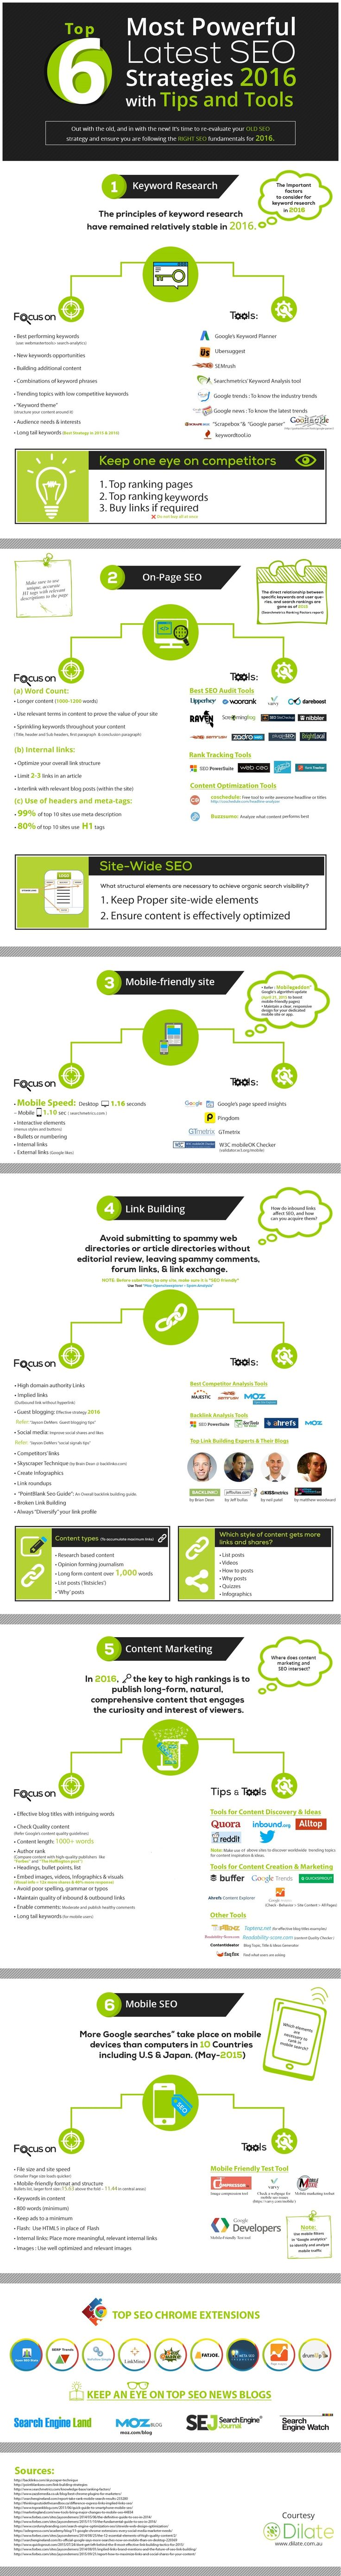 Top 6 Most Powerful Latest SEO Strategies 2016 With Tips and Tools #Infographic